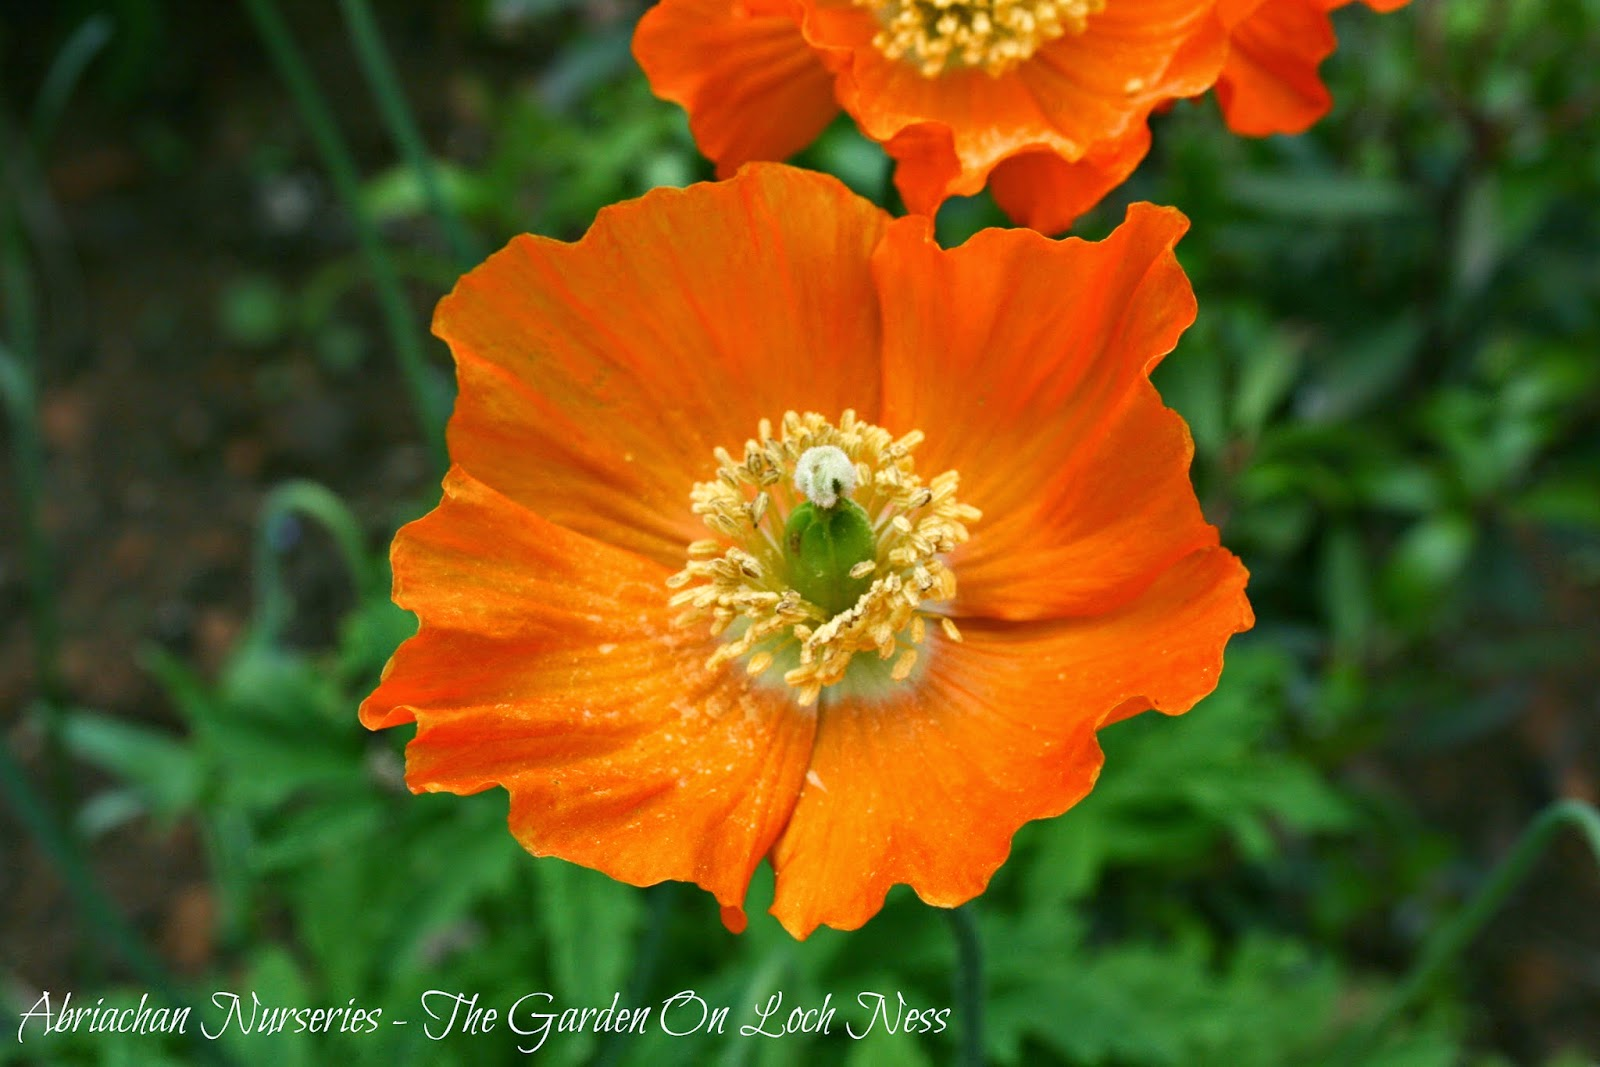 Welsh Poppies Meconopsis cambrica Abriachan Nurseries